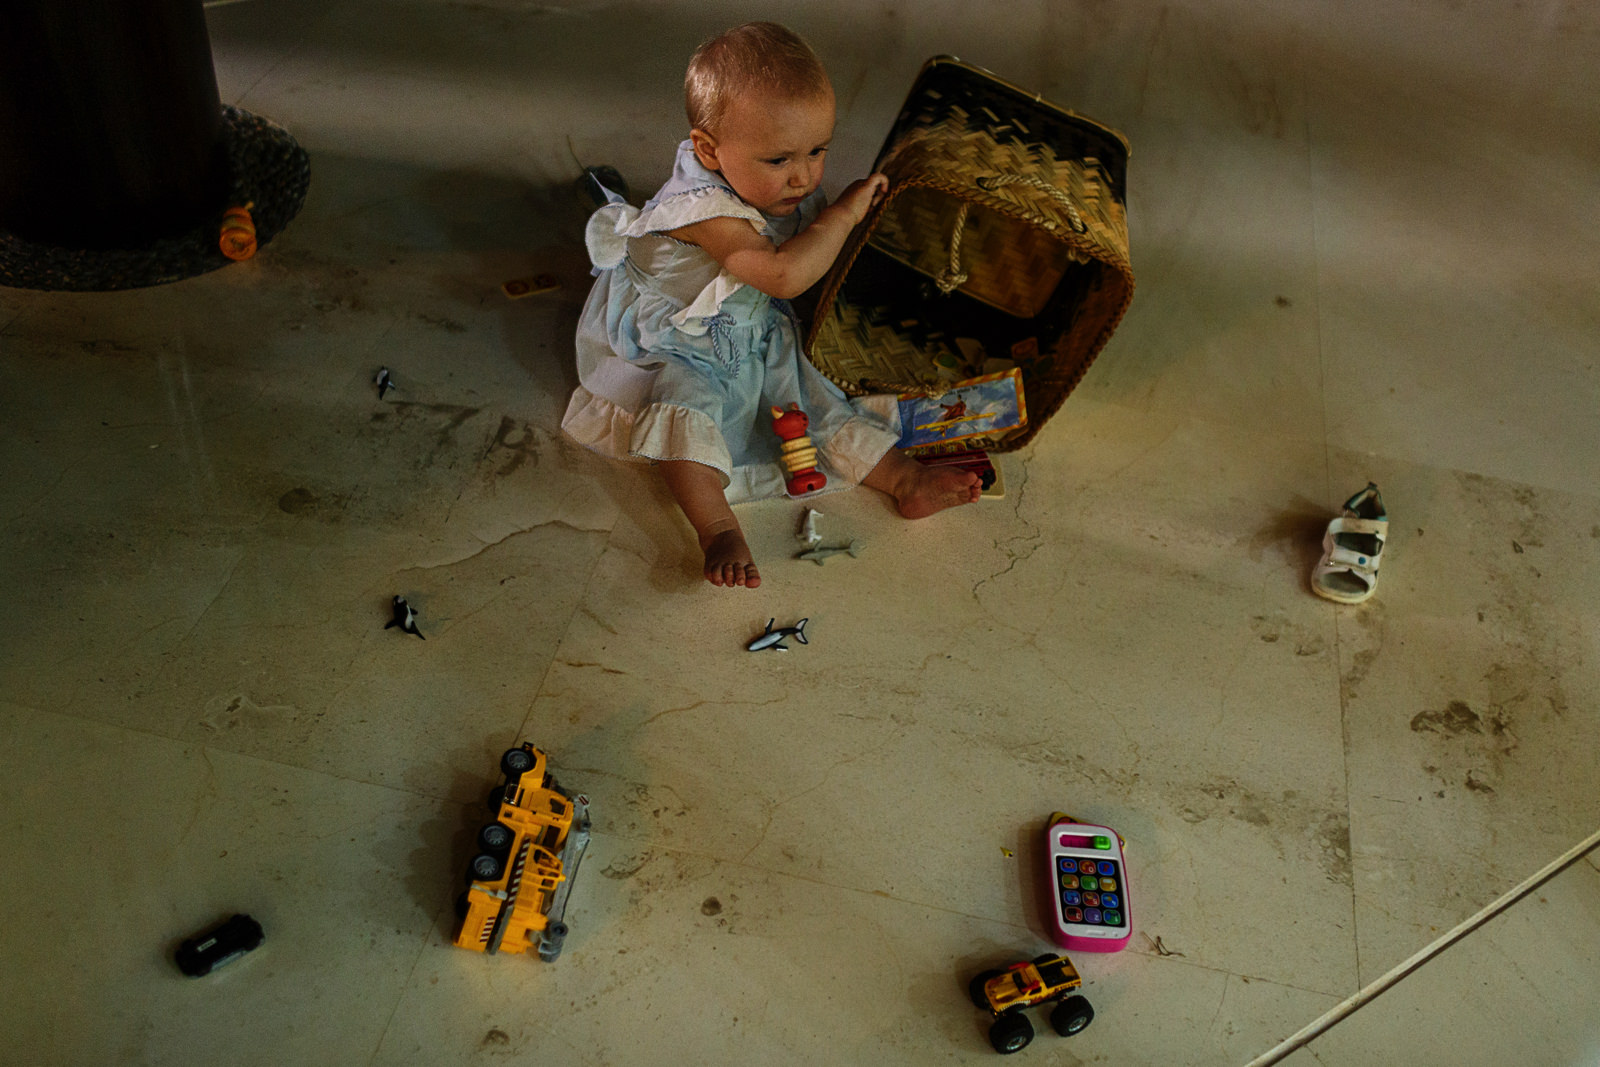 Baby girl making a mess with the basket of toys